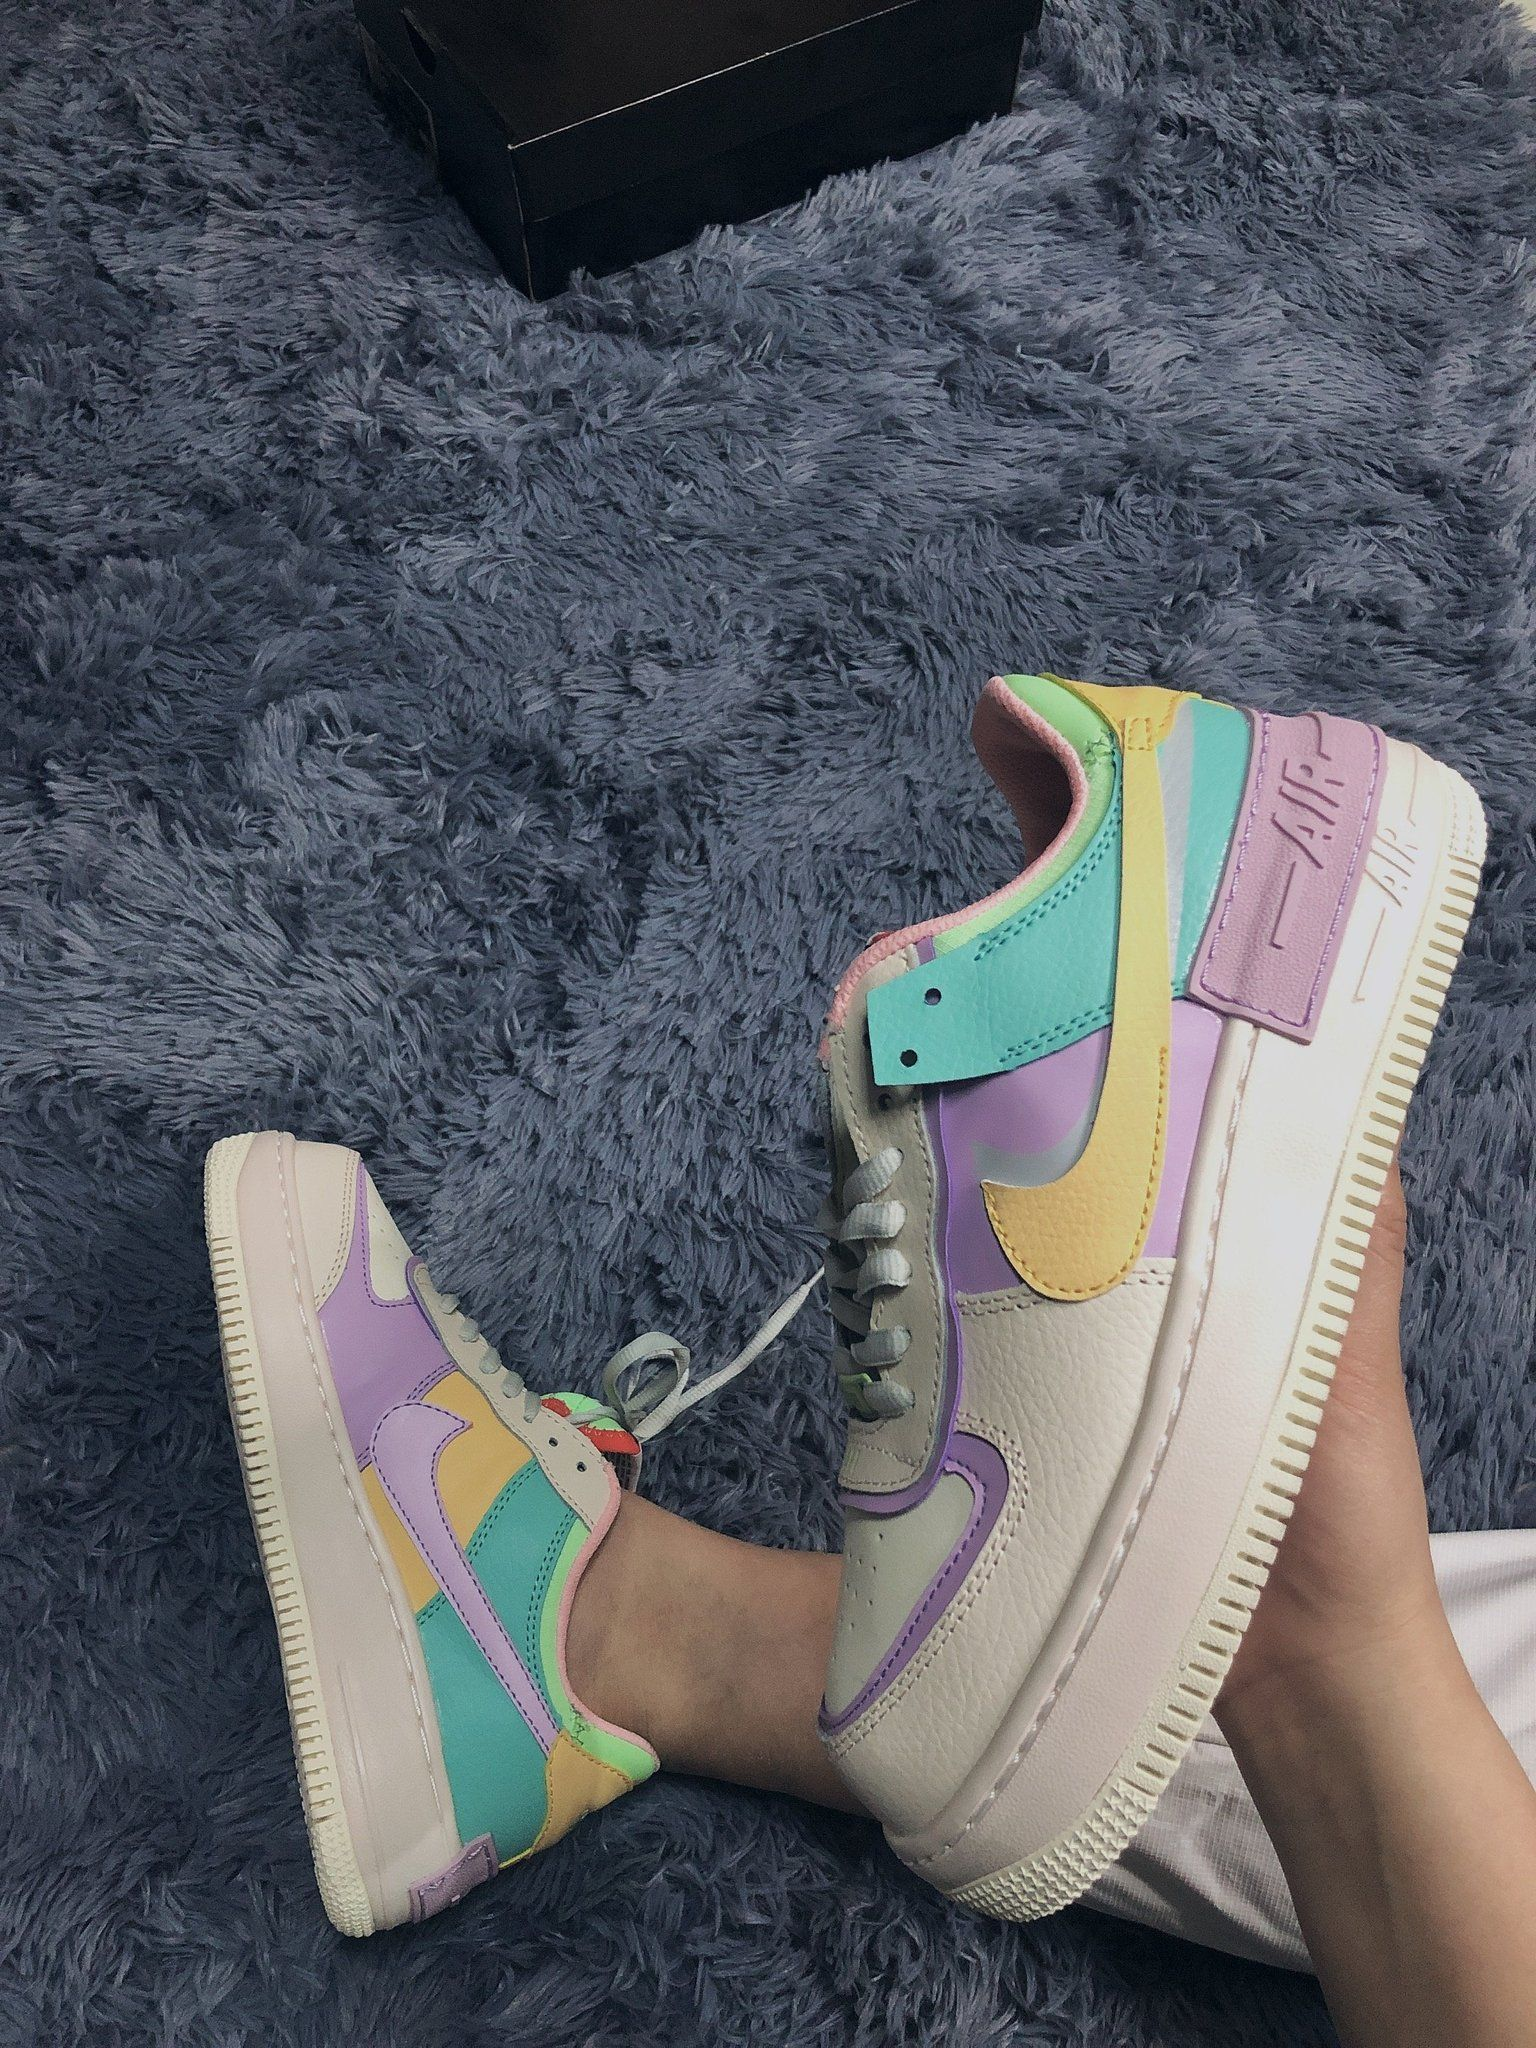 Nike Wmns Air Force 1 Shadow 'Pale Ivory' CI0919 101 in